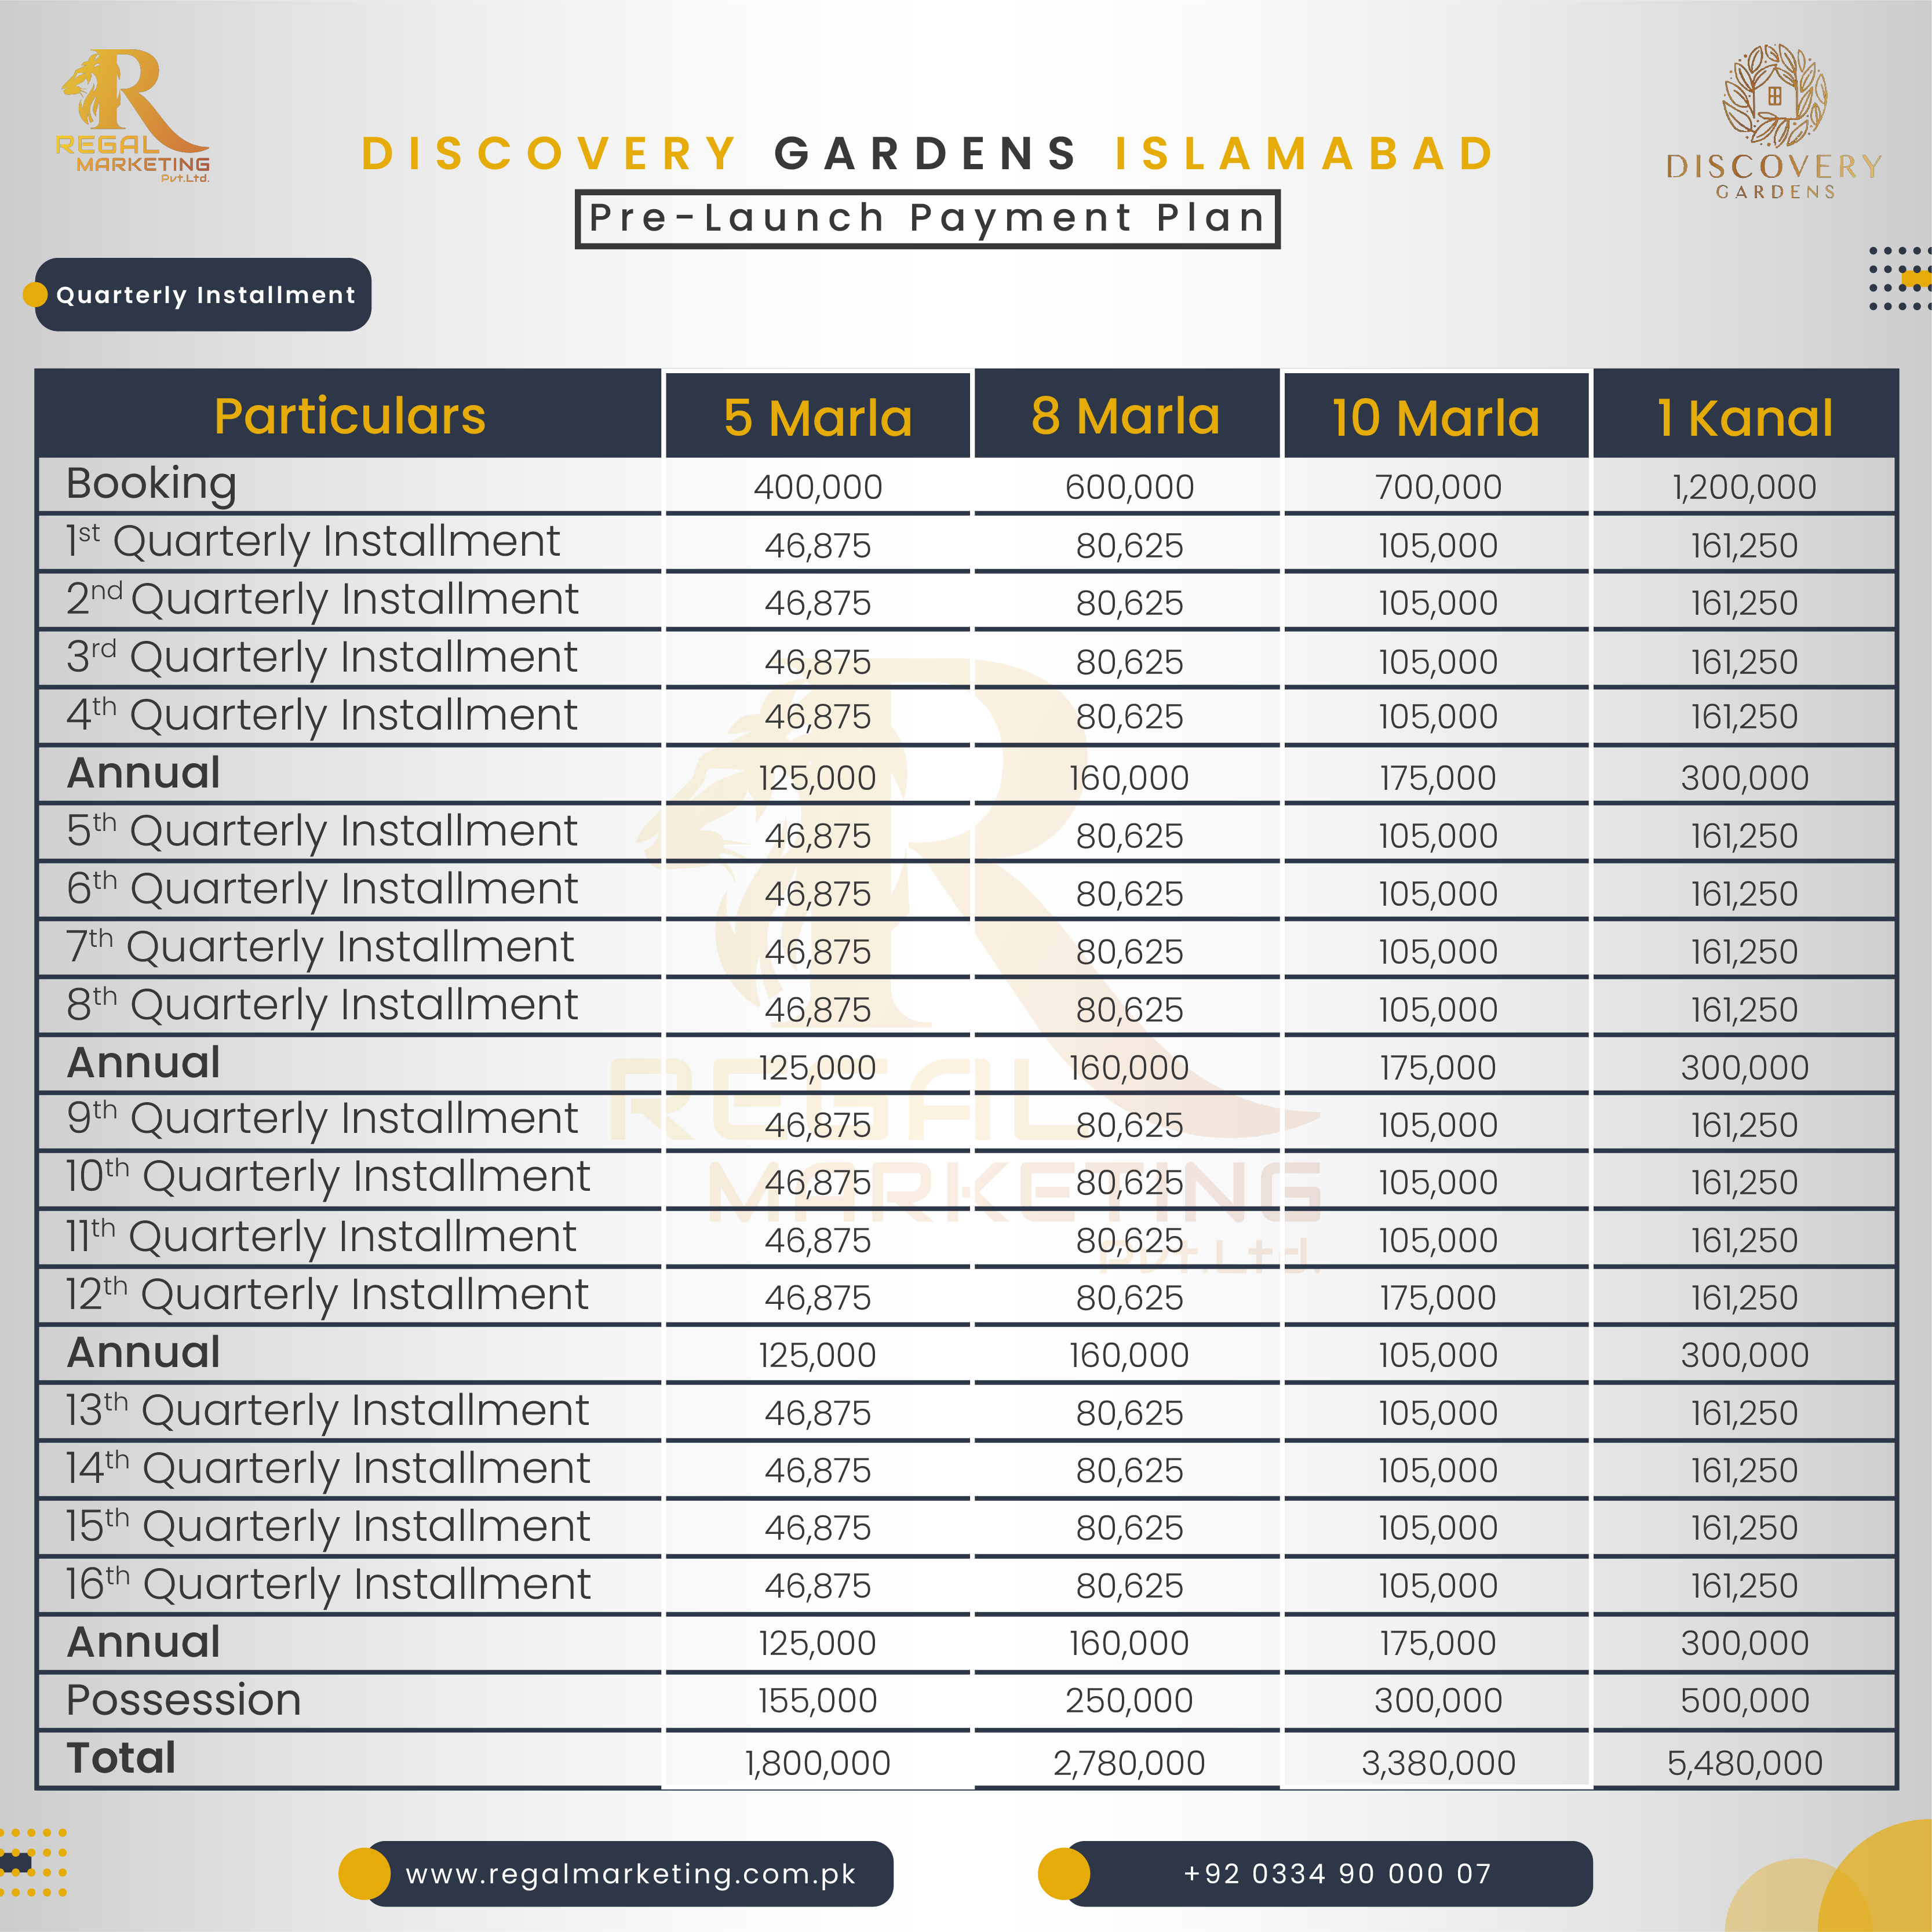 Quarterly Payment Plan of Discovery Gardens